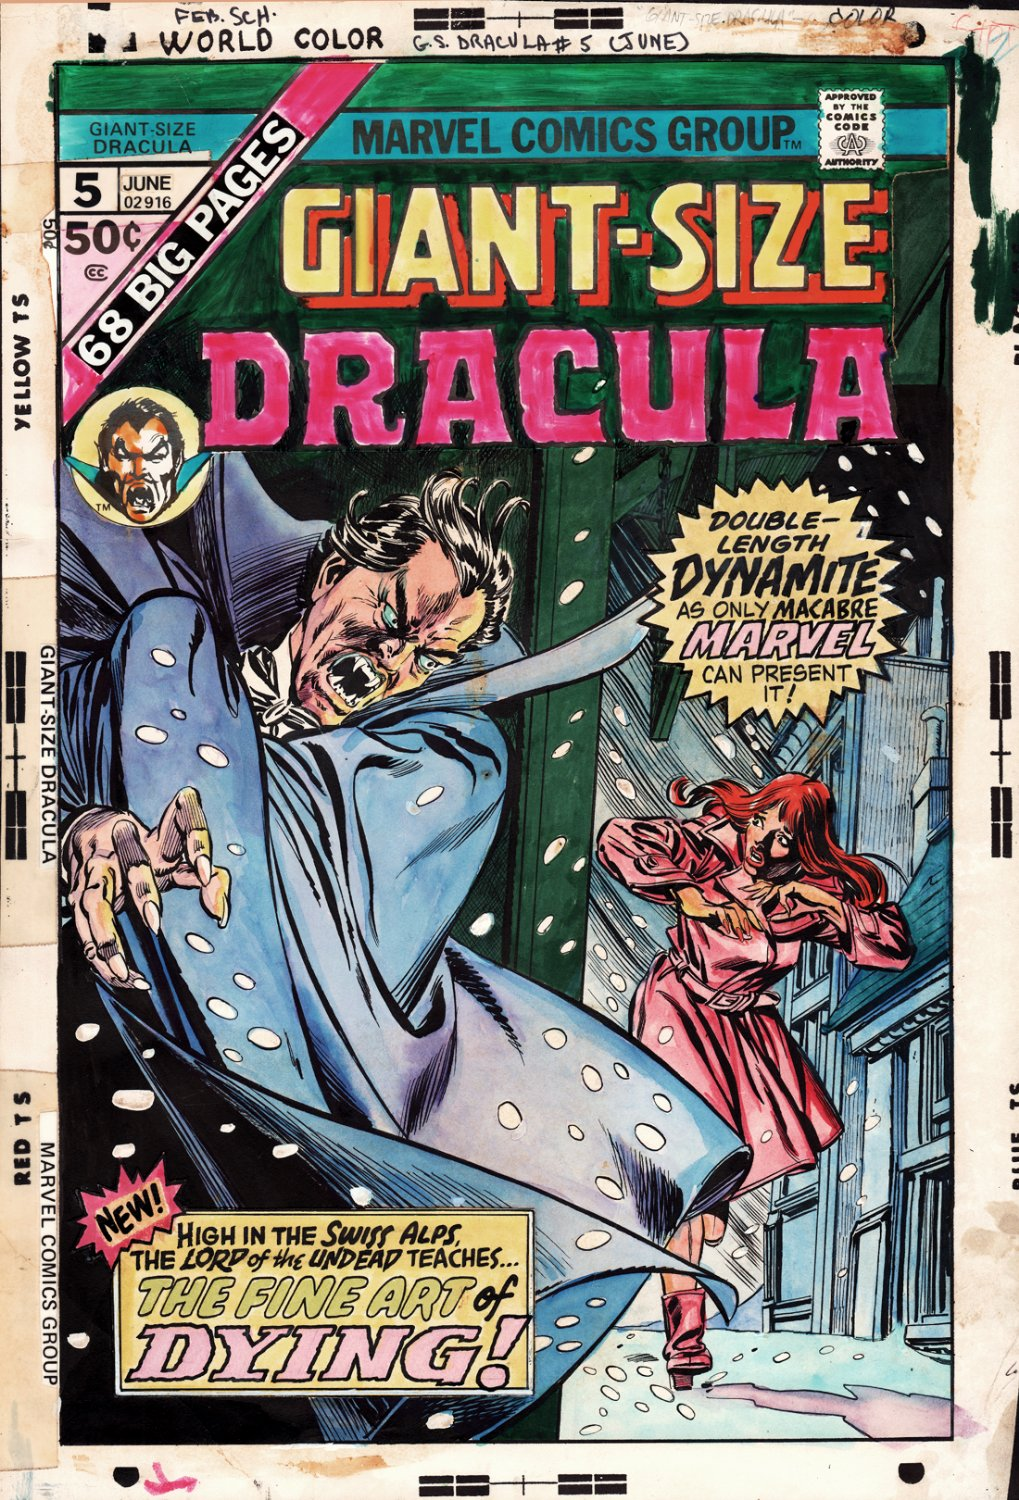 Giant-Size Dracula #5 Cover (Dracula Ready To Kill An Unsuspecting MJ Look-a-Like!) 1975